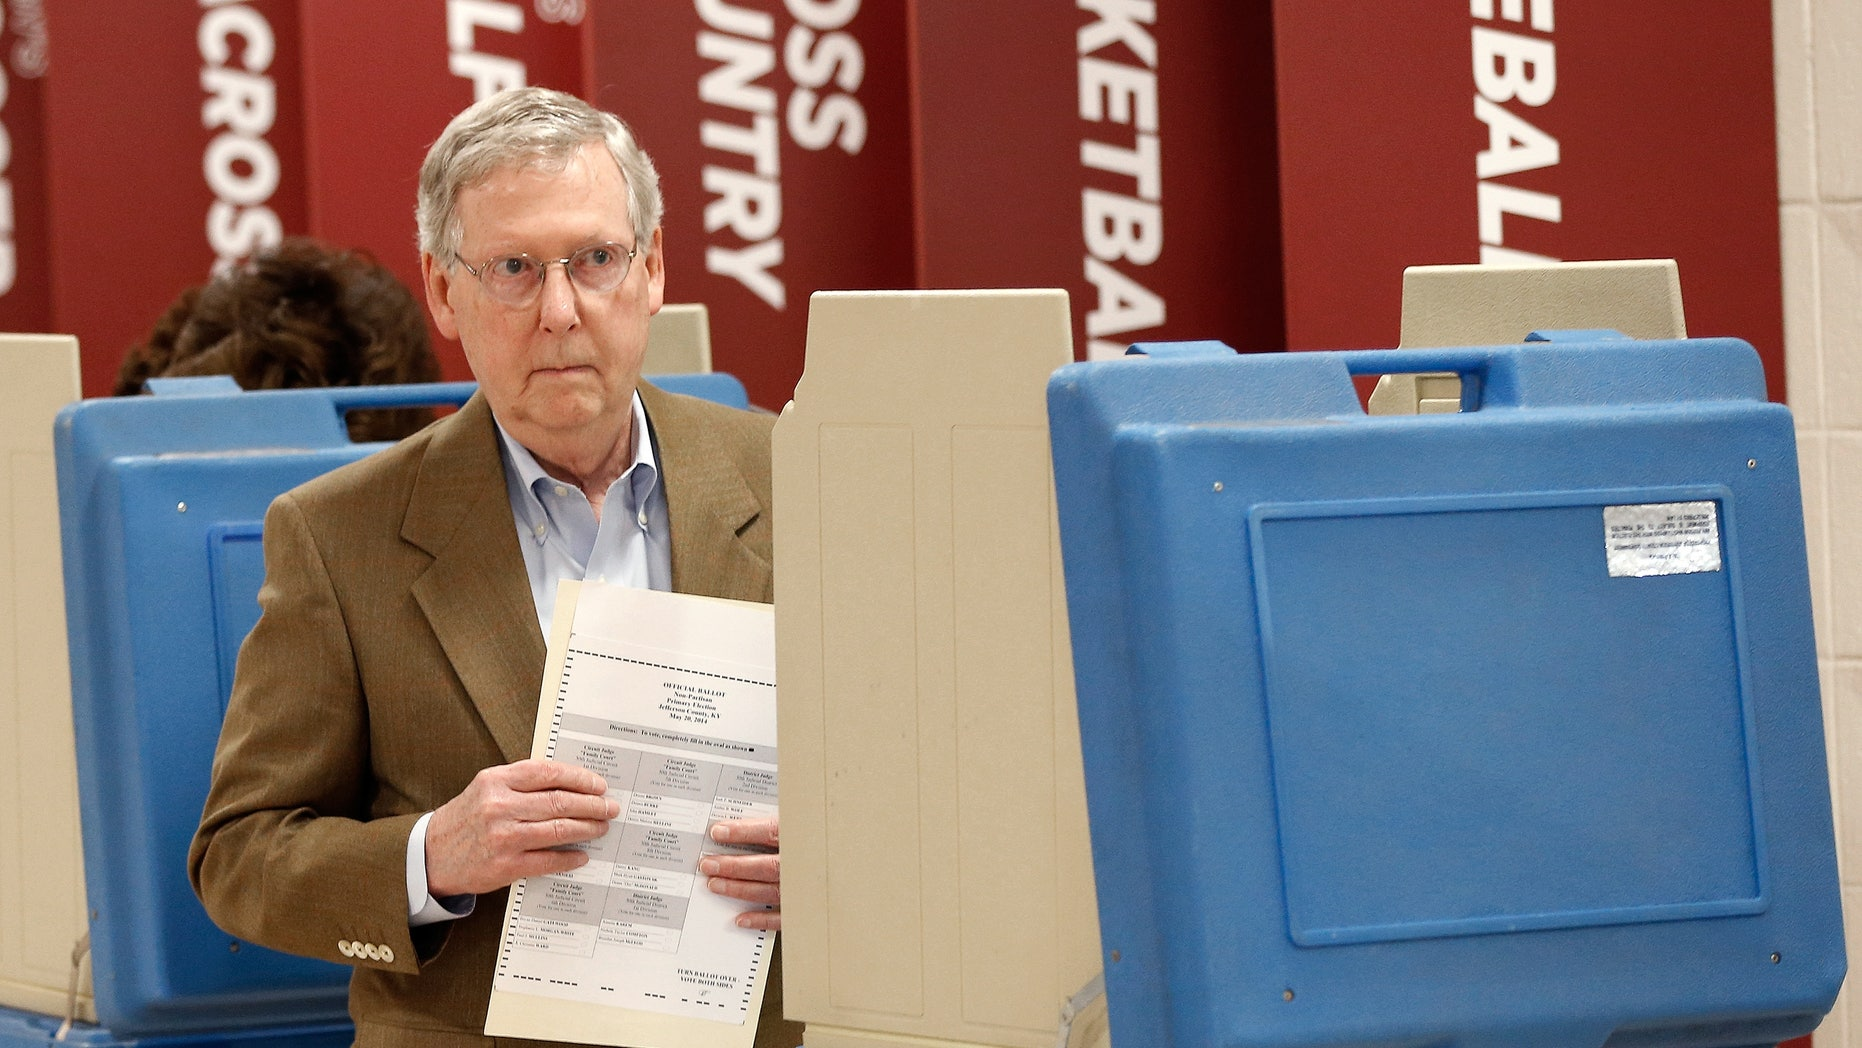 Sen. Mitch McConnell votes in the state Republican primary on May 20, 2014 in Louisville, Kentucky.